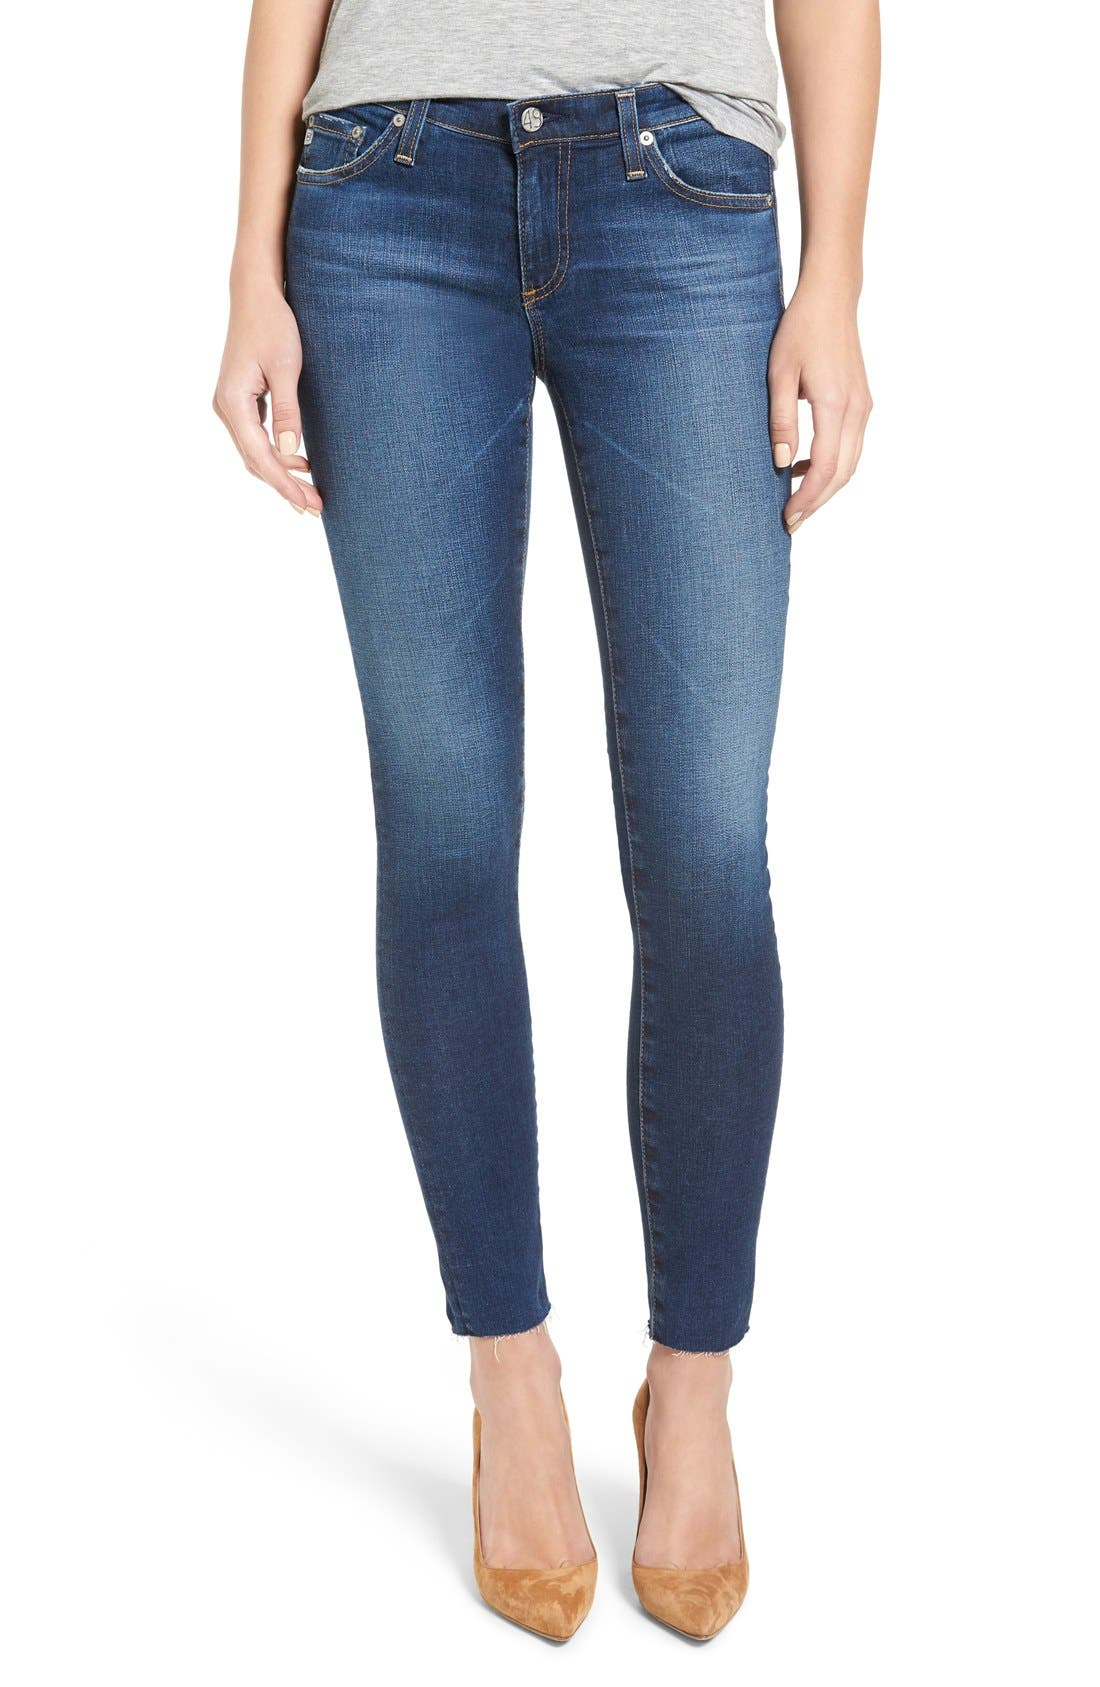 Main Image - AG 'The Legging' Ankle Jeans (7 Year Break Me Down)